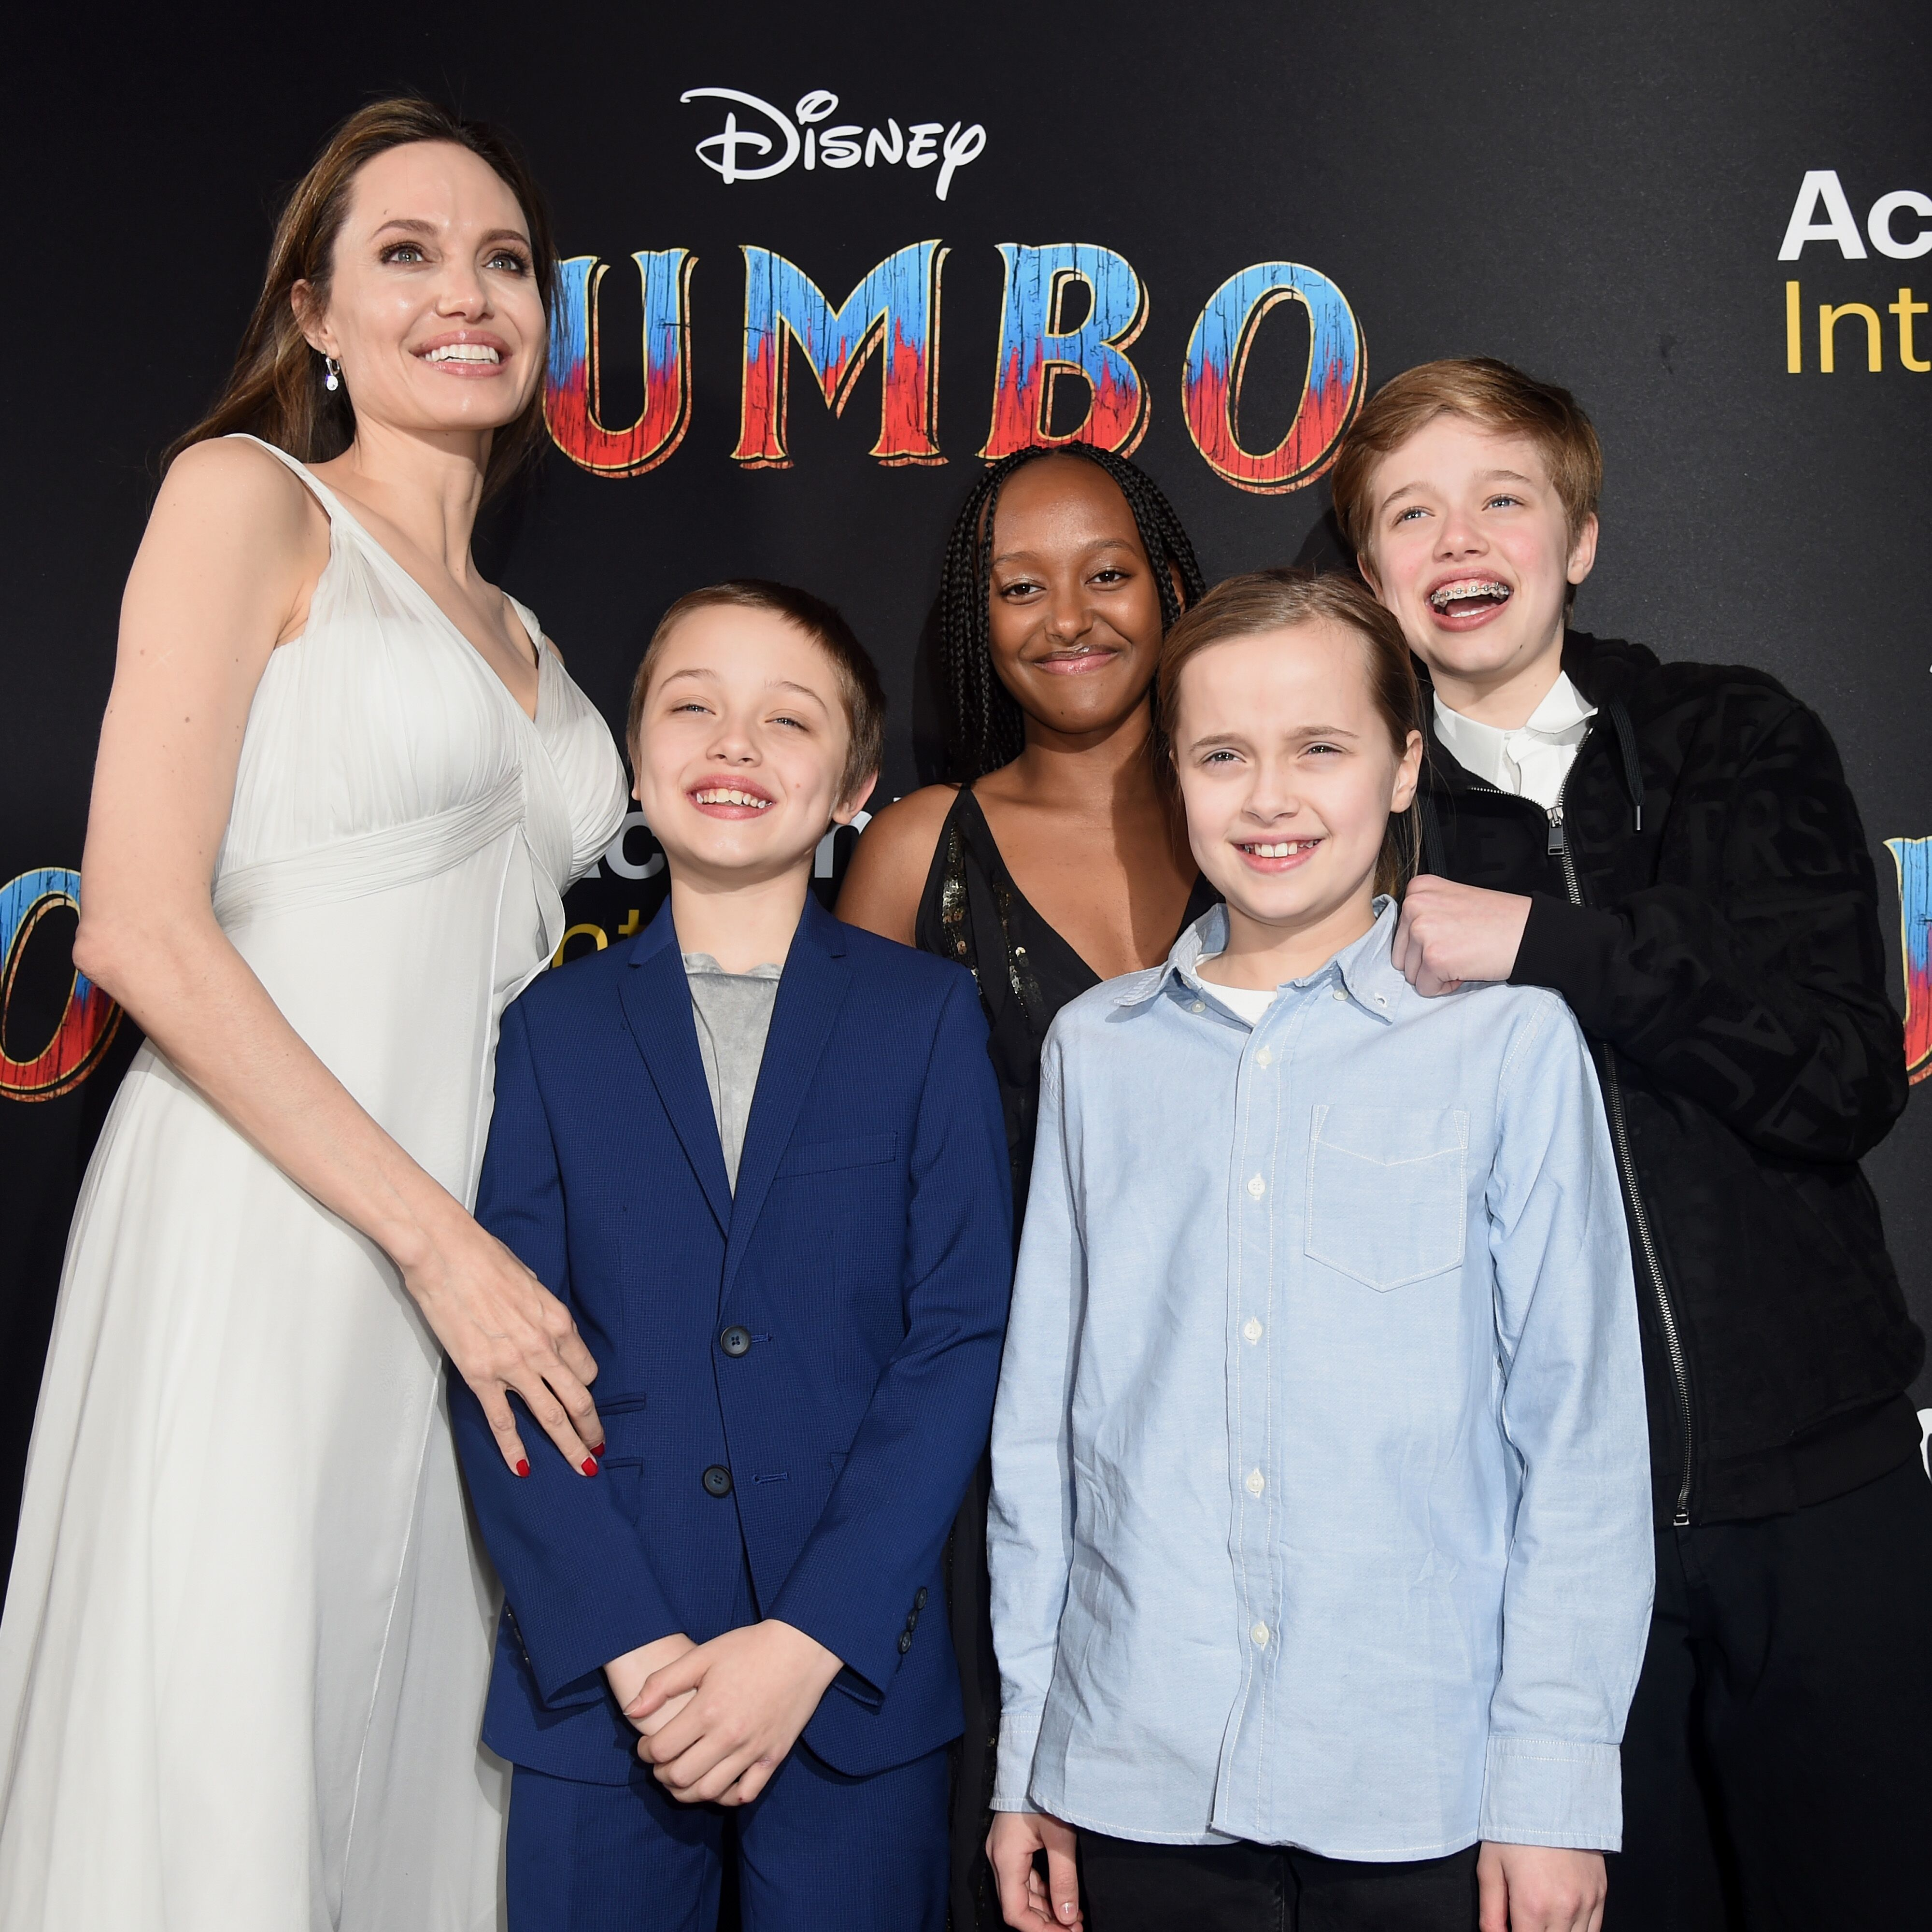 """Angelina Jolie, Knox Leon Jolie-Pitt, Zahara Marley Jolie-Pitt, Vivienne Marcheline Jolie-Pitt, and Shiloh Nouvel Jolie-Pitt attend the premiere of Disney's """"Dumbo"""" in 2019 in Los Angeles 